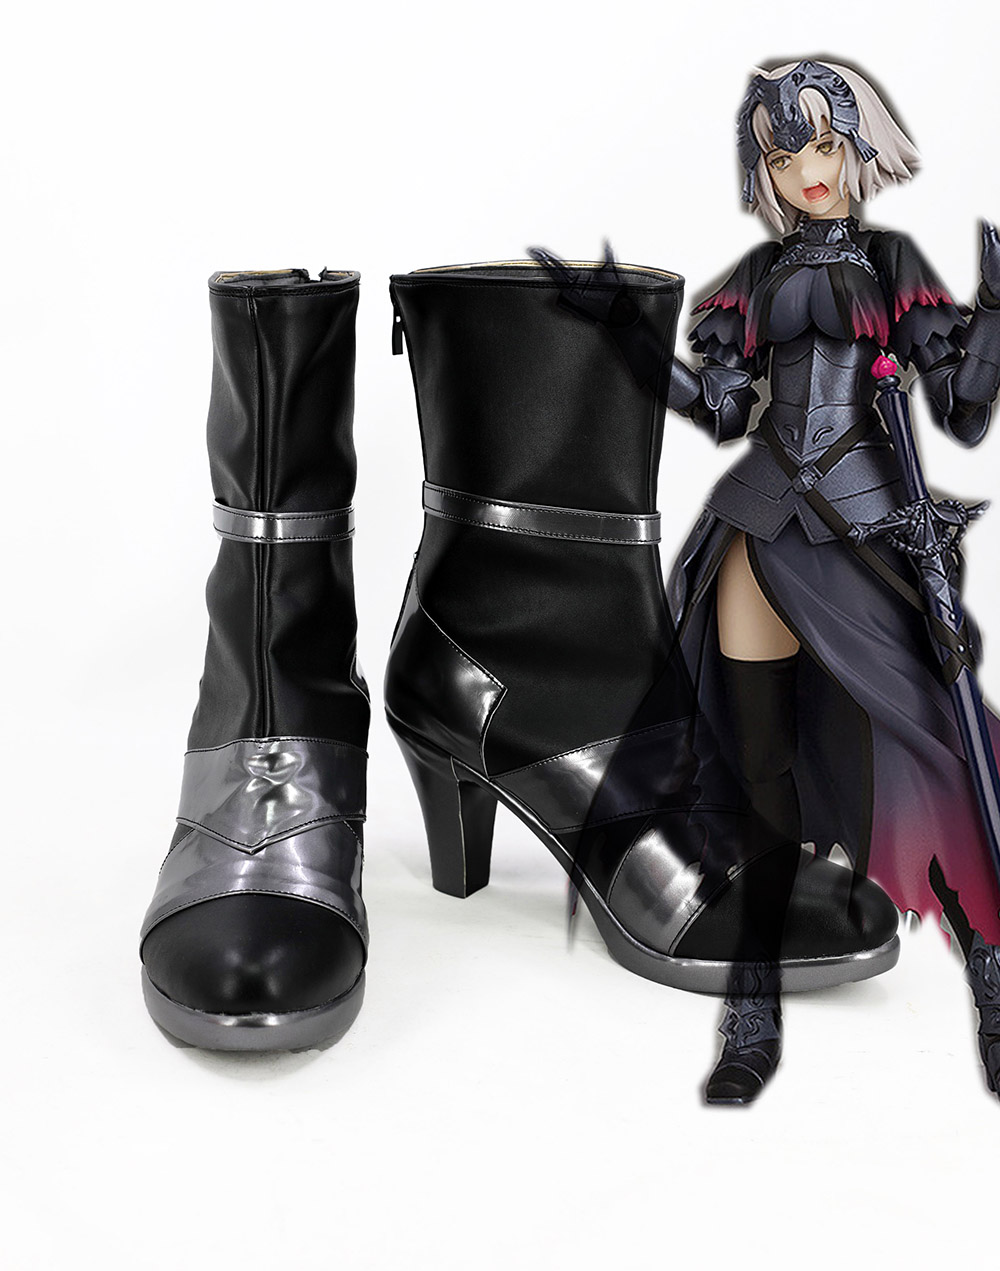 Fate Grand Order FGO Alter Jeanne d Arc Cosplay Boots Shoes Custom Made